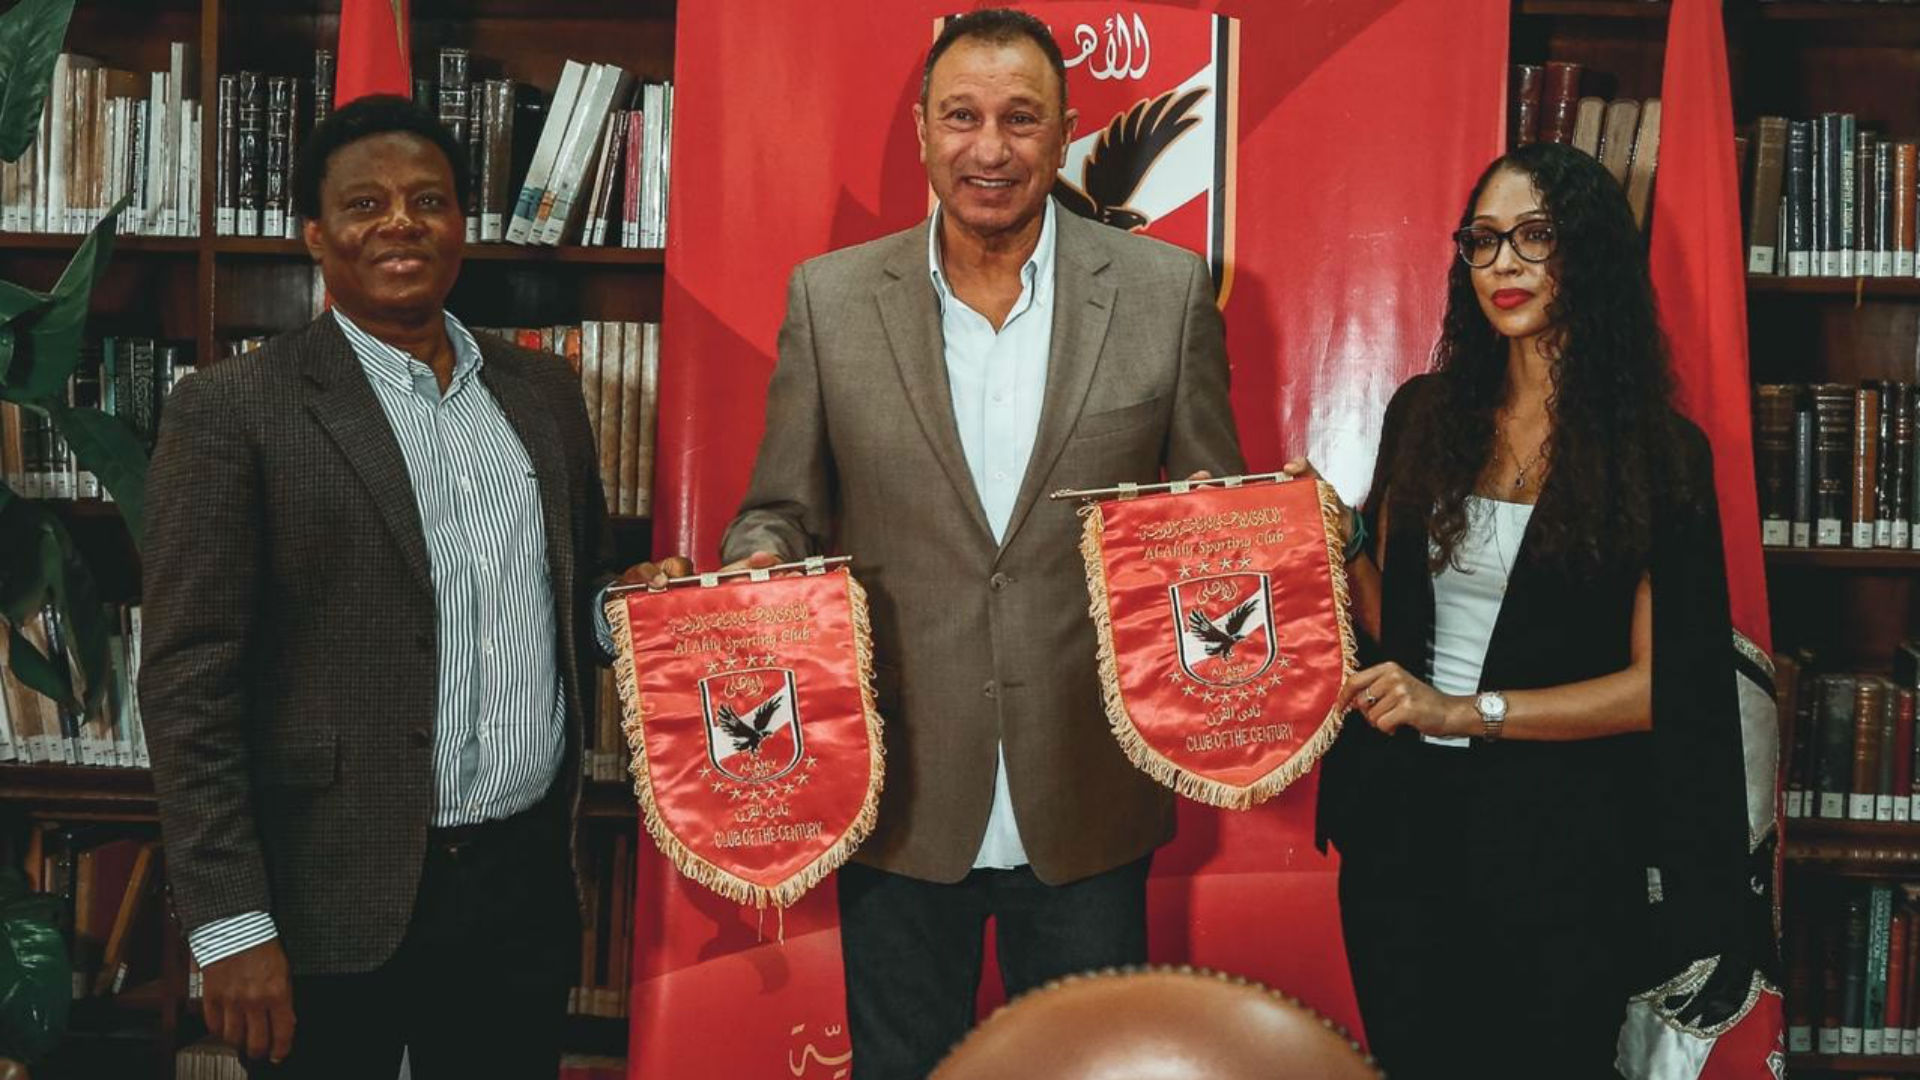 Barbara Gonzalez of Simba SC with Al Ahly officials.